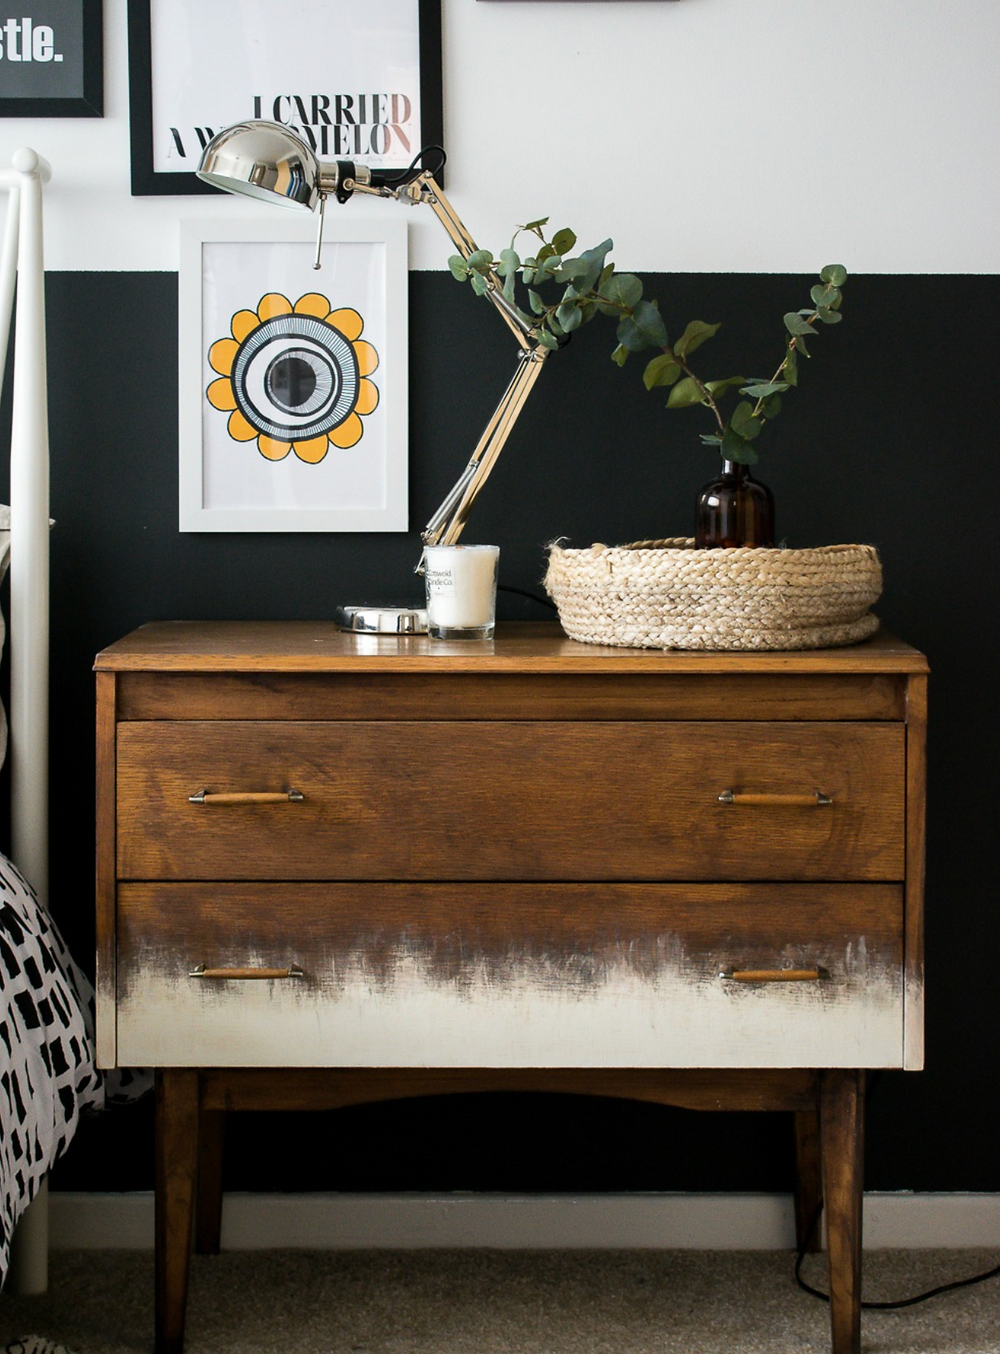 A vintage brown dresser with some distressing beside a bed in a modern home.